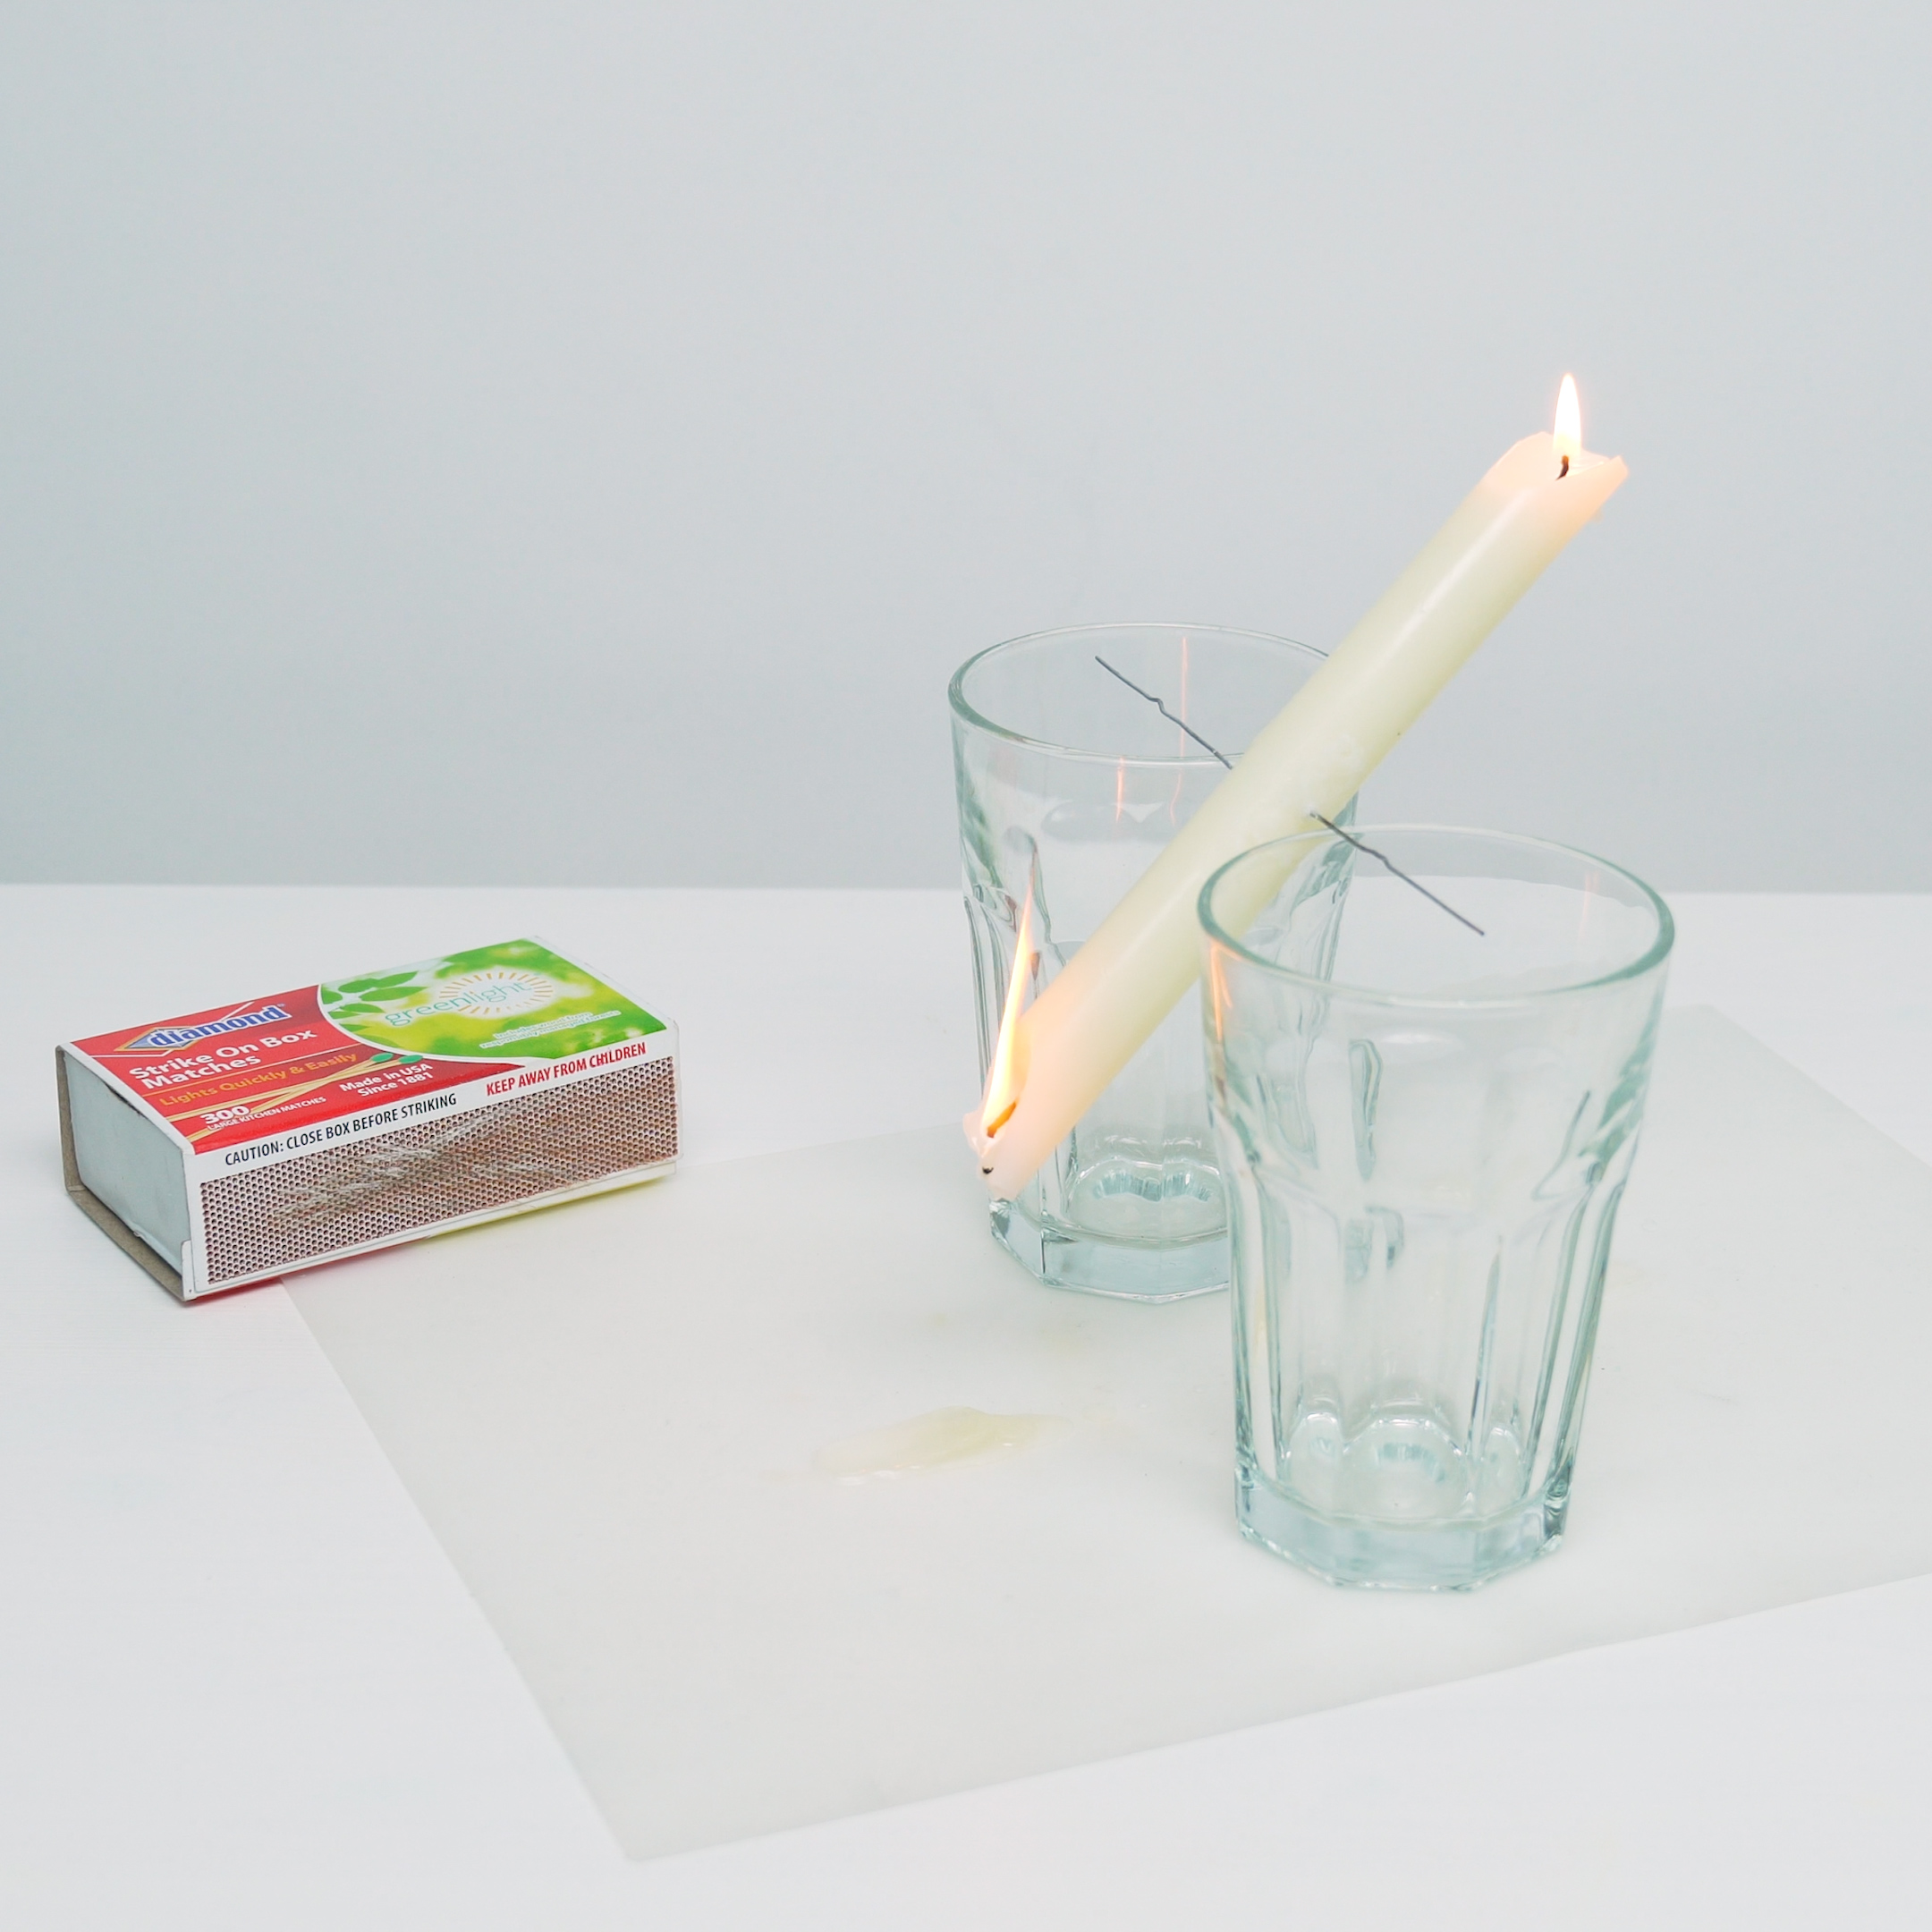 Rotating Candle Simple Circuits For Kids Physics Harness The Power Of To Make A Teeter Totter Back And Forth